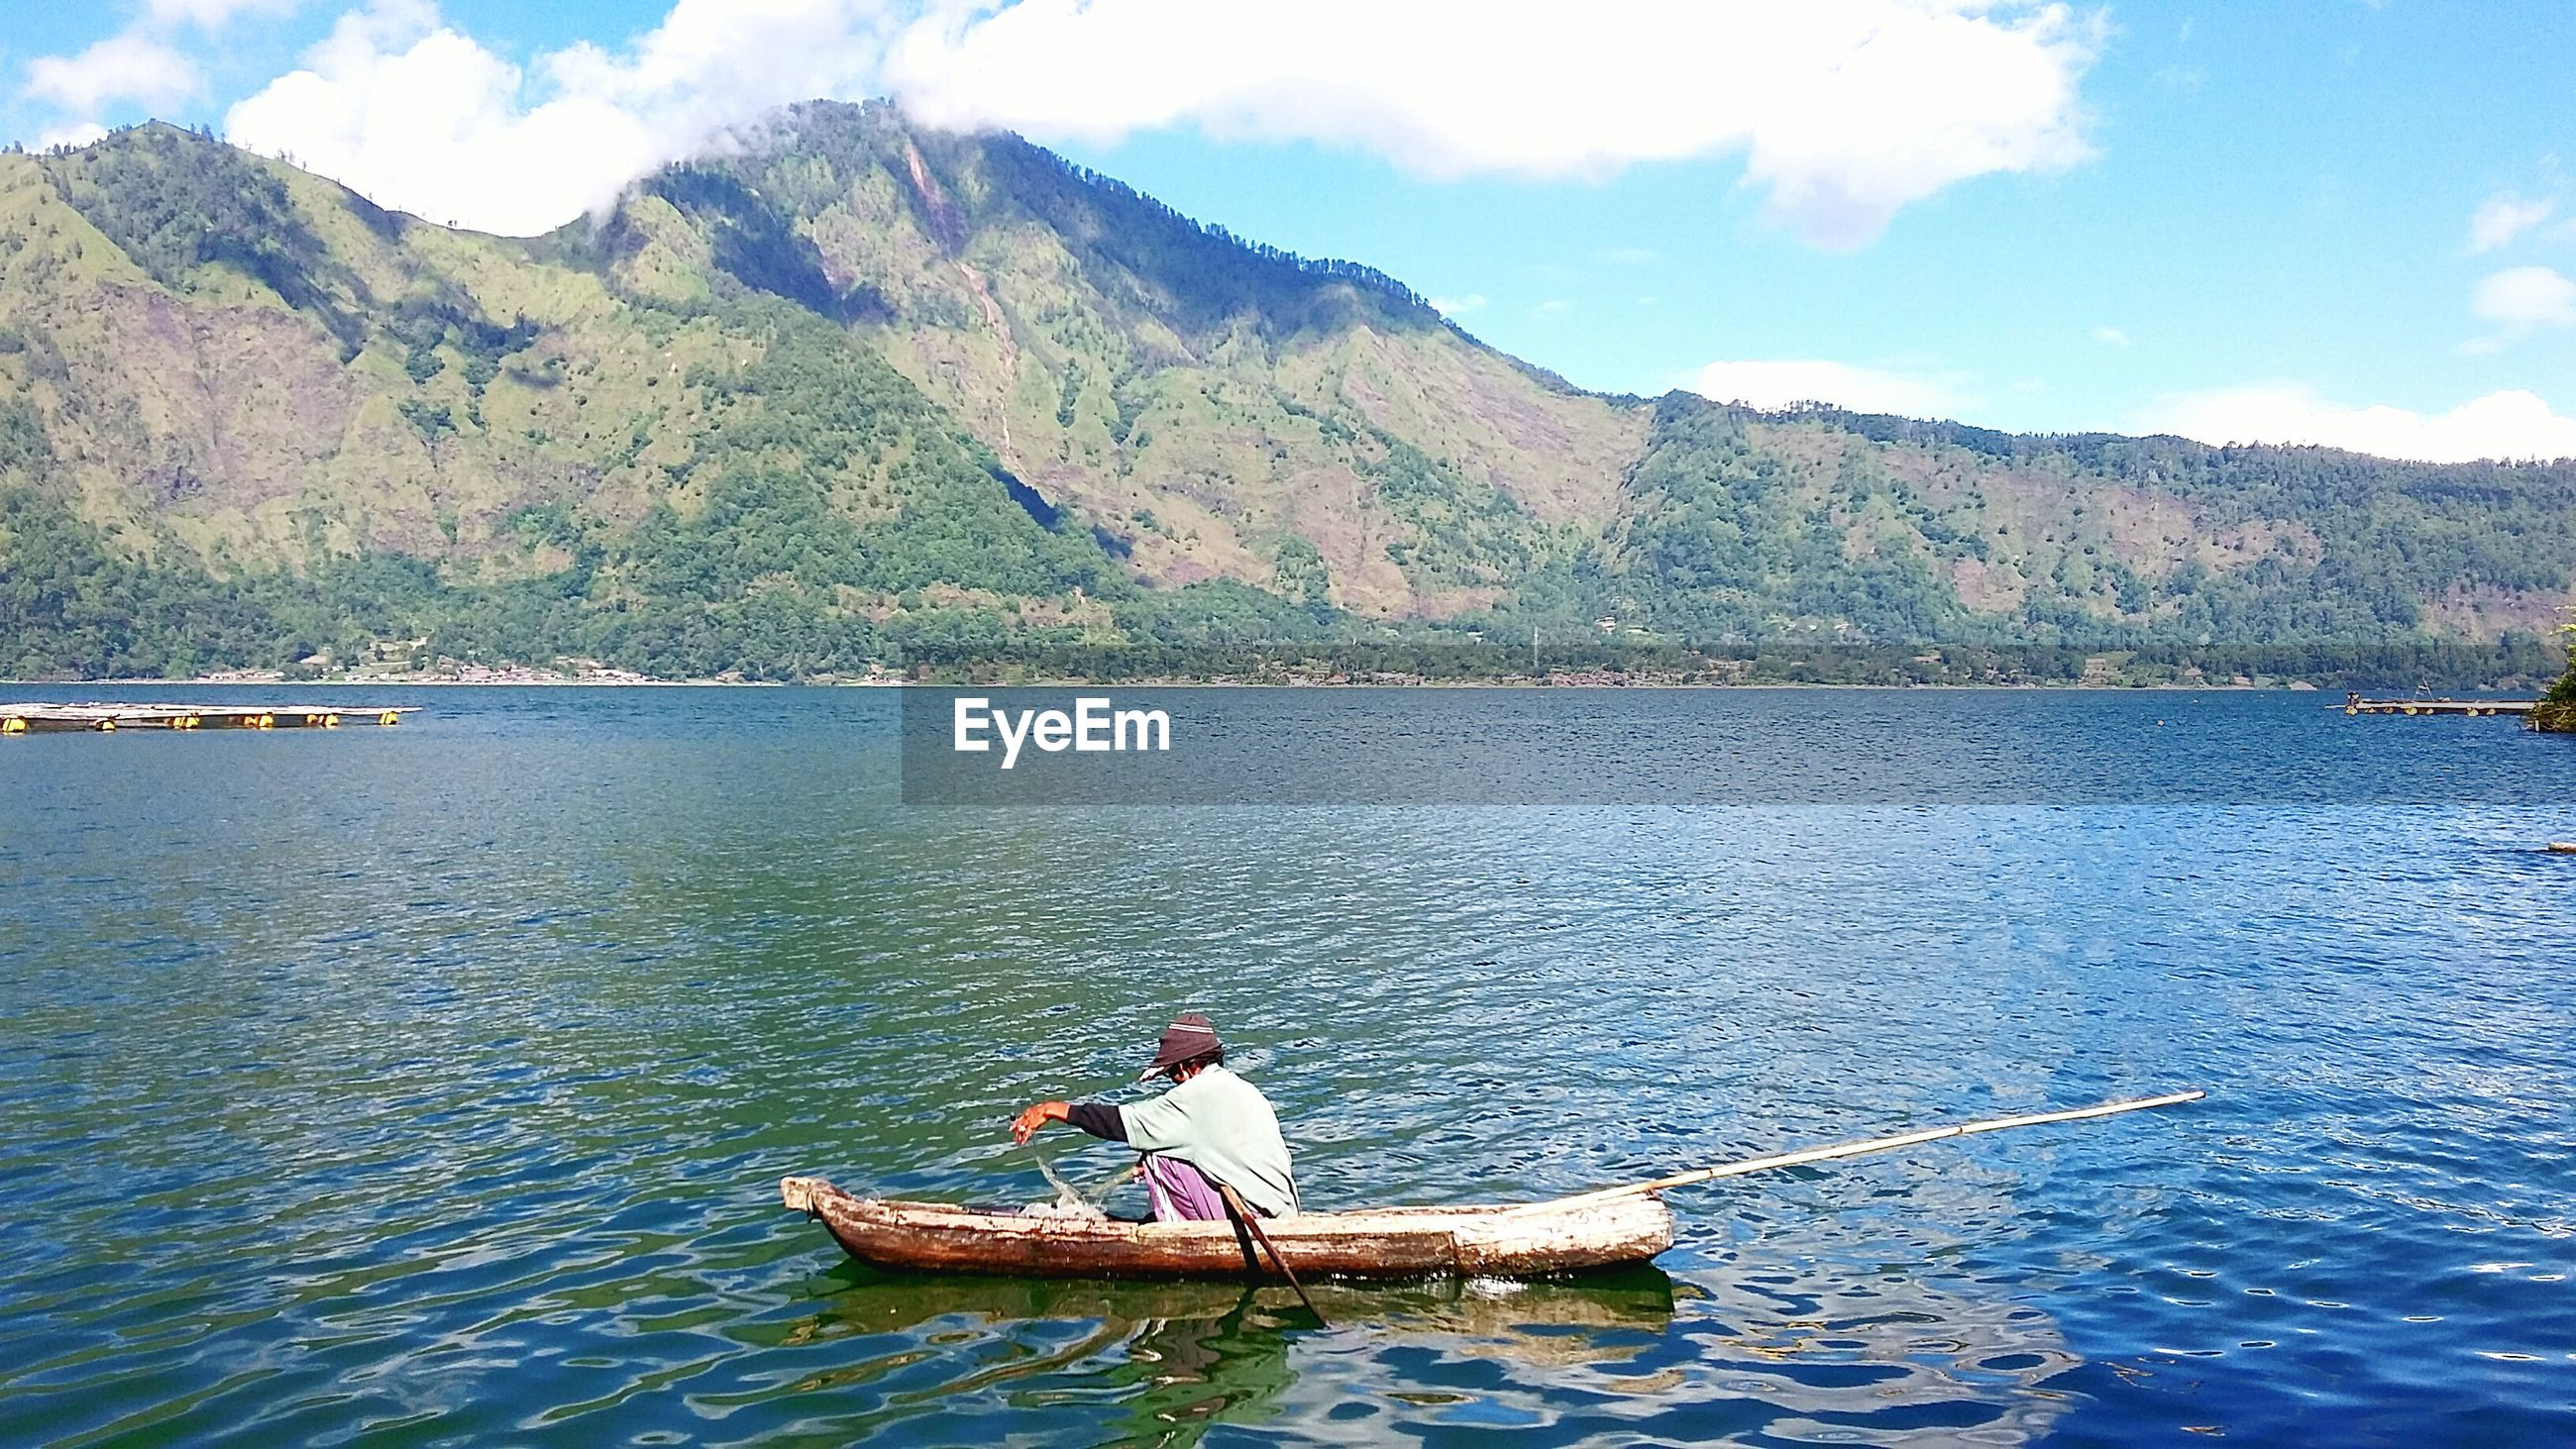 real people, mountain, day, water, transportation, nautical vessel, nature, outdoors, mode of transport, one person, waterfront, beauty in nature, scenics, sky, river, wooden raft, mountain range, men, cloud - sky, oar, fisherman, sitting, tree, full length, rowing, sailing, outrigger, people